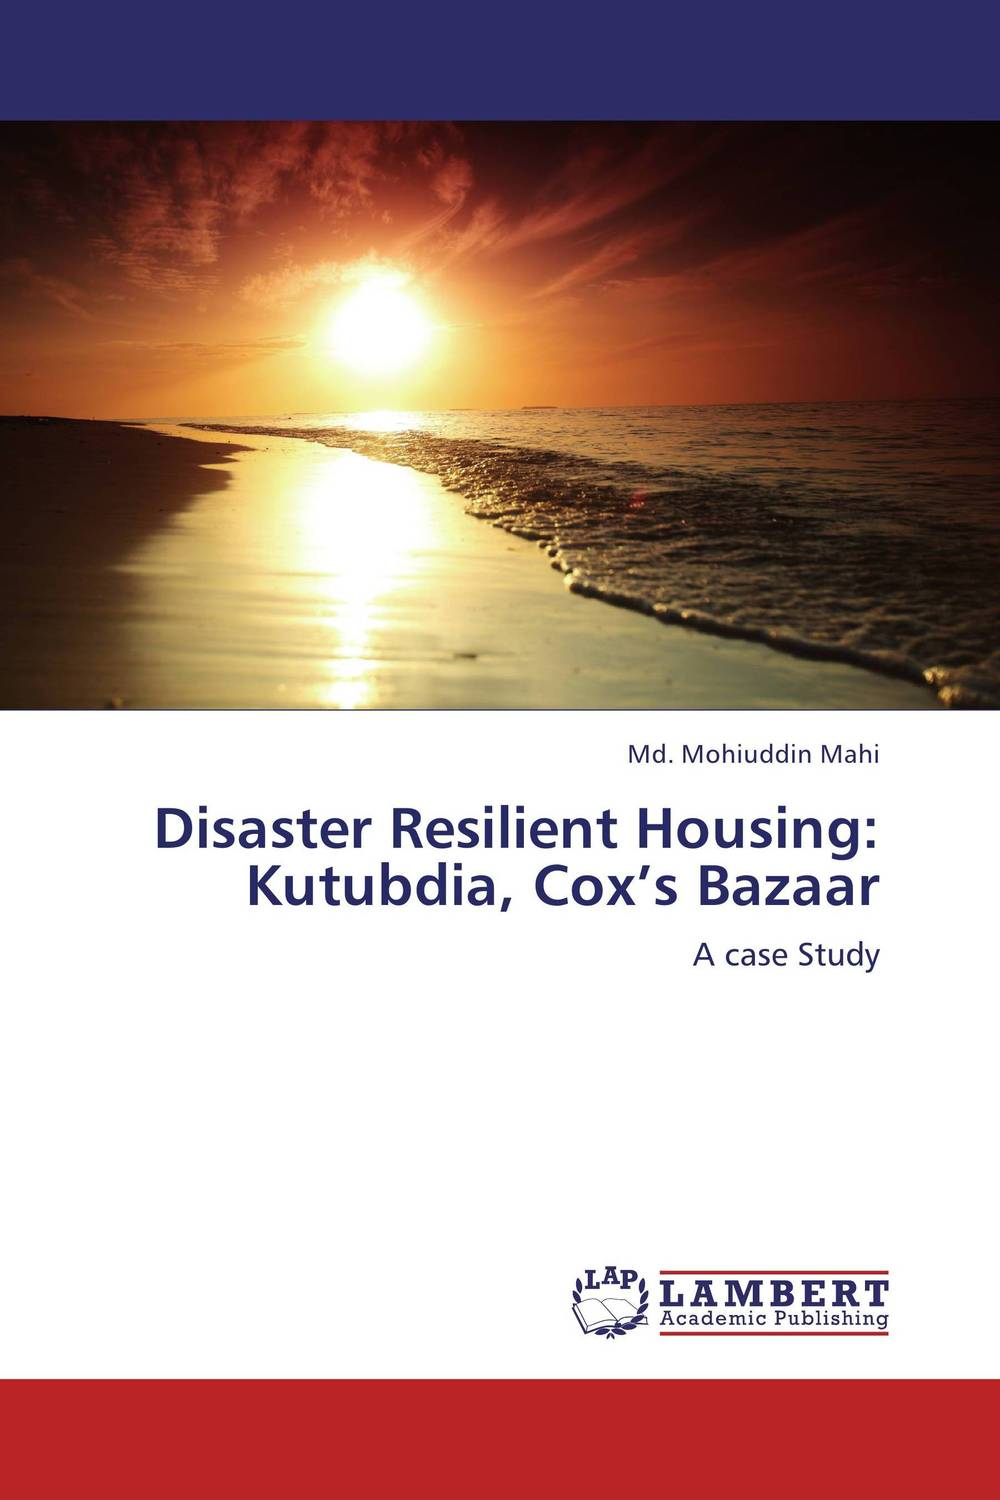 Disaster Resilient Housing: Kutubdia, Cox's Bazaar a royal disaster